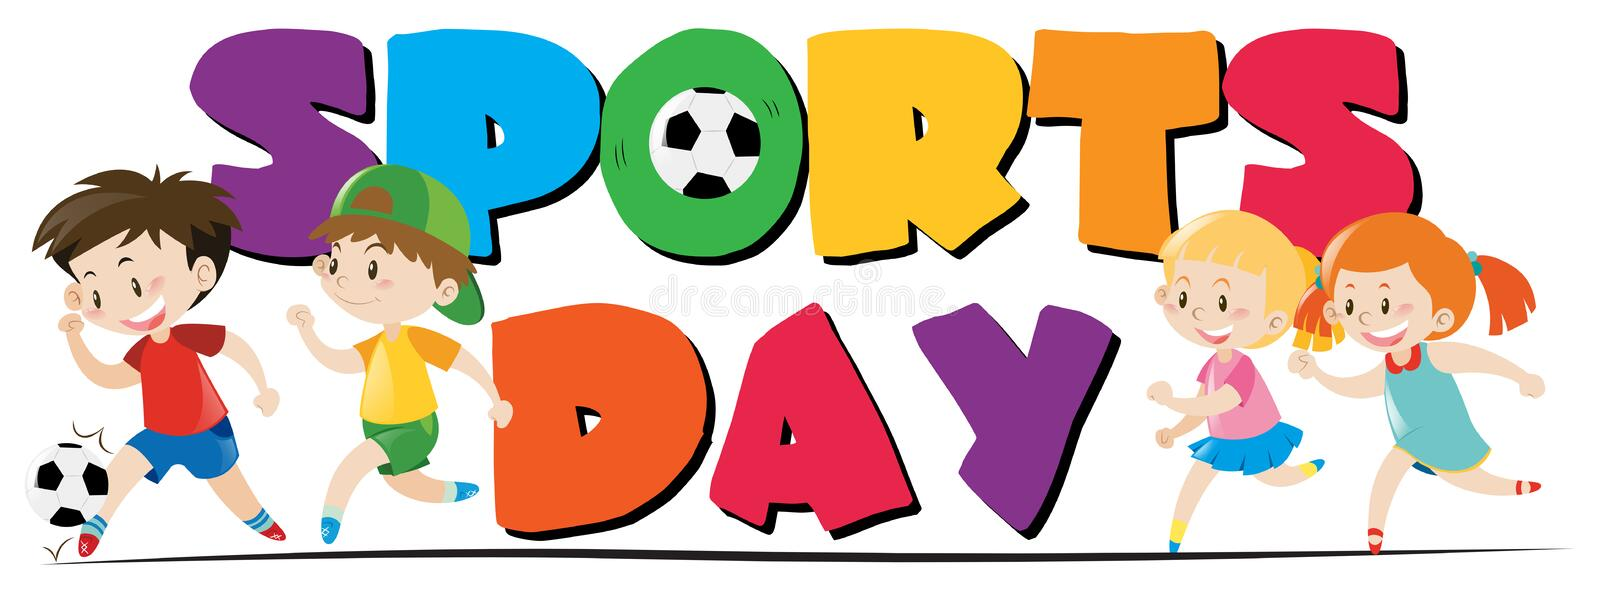 Sport day theme with kids playing sports vector illustration